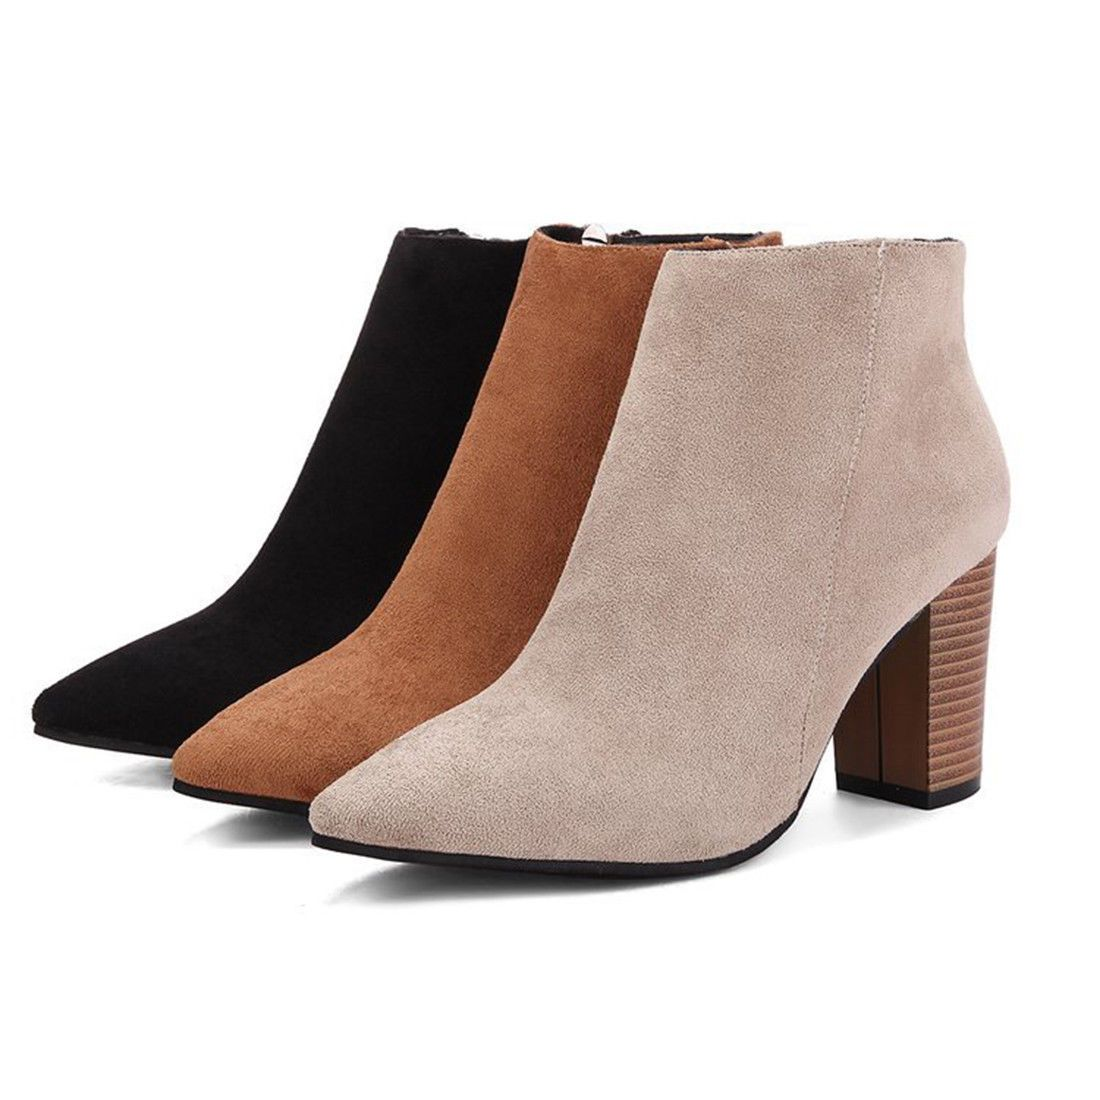 2039f94d09e4 Women s Lady Block High Heel Ankle Boots Side Zip Pointed Toe Martin Short  Shoes